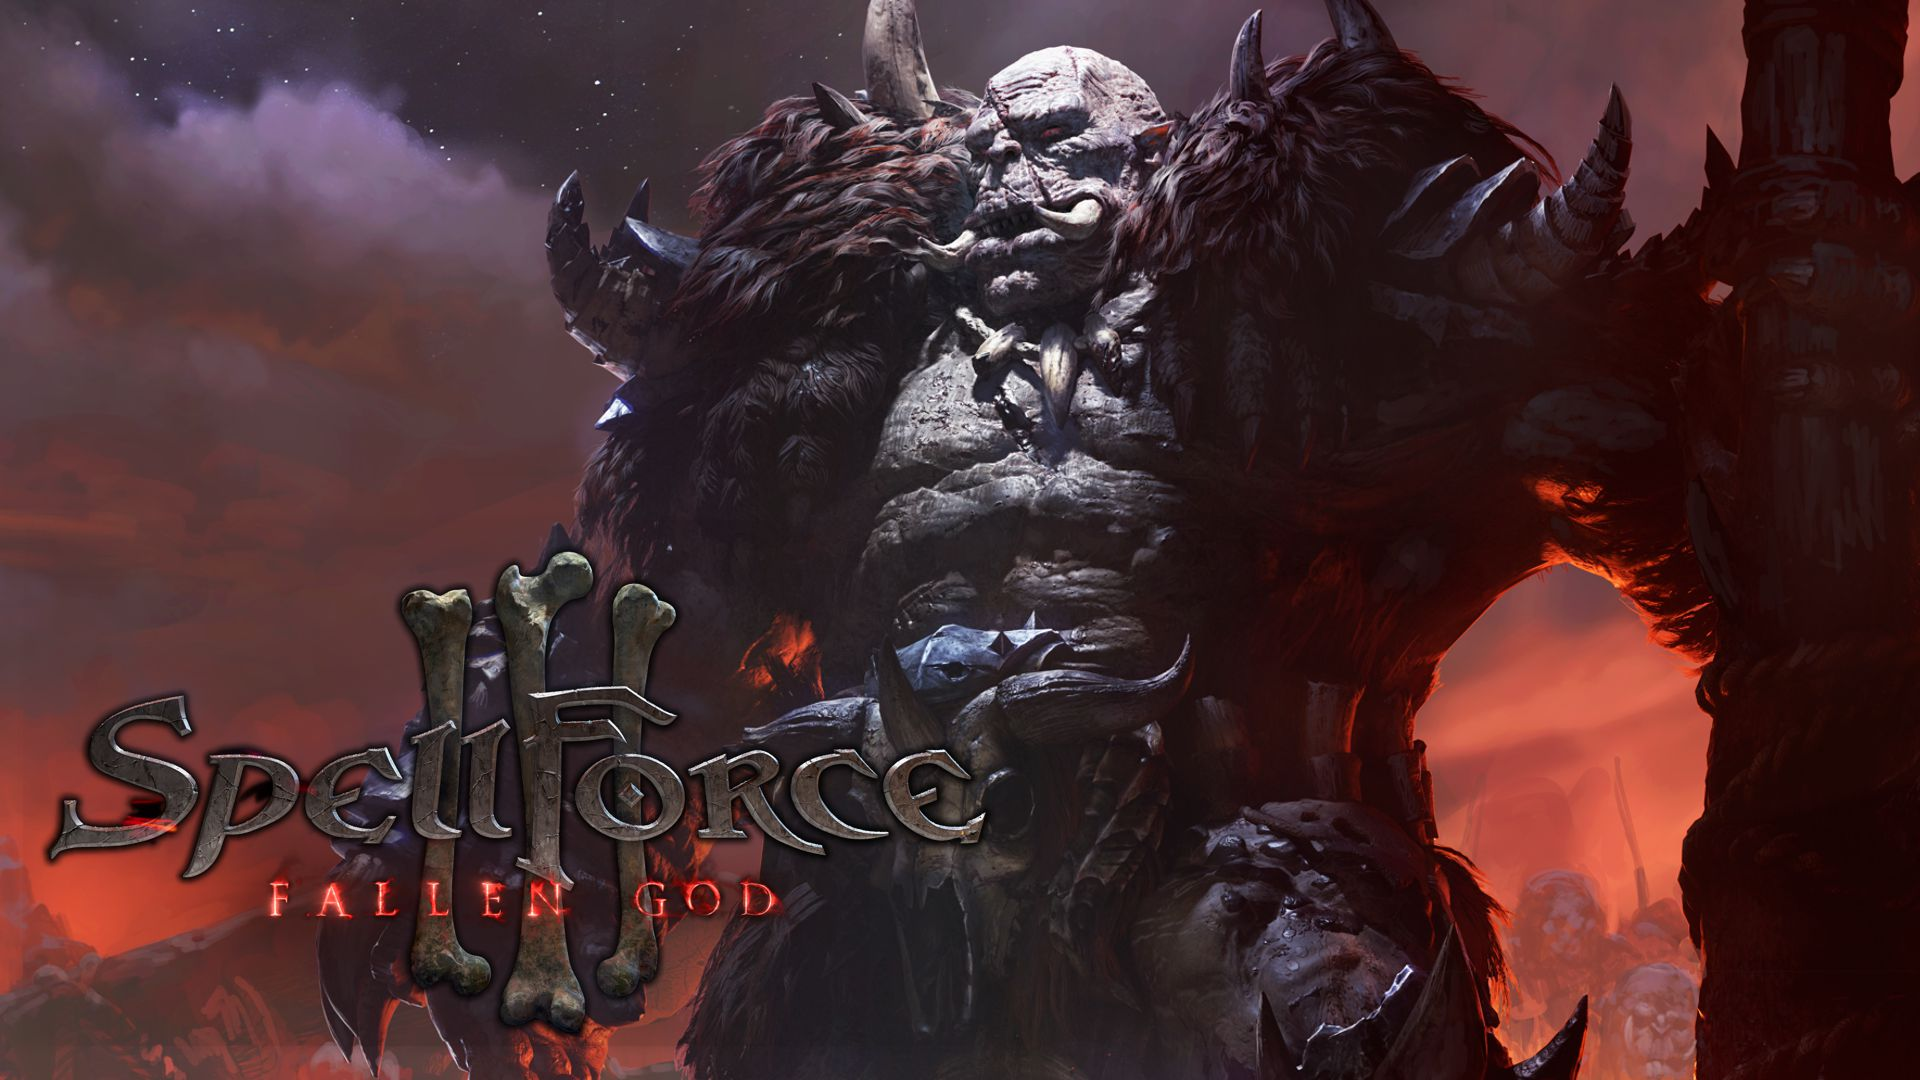 SpellForce III Fallen God